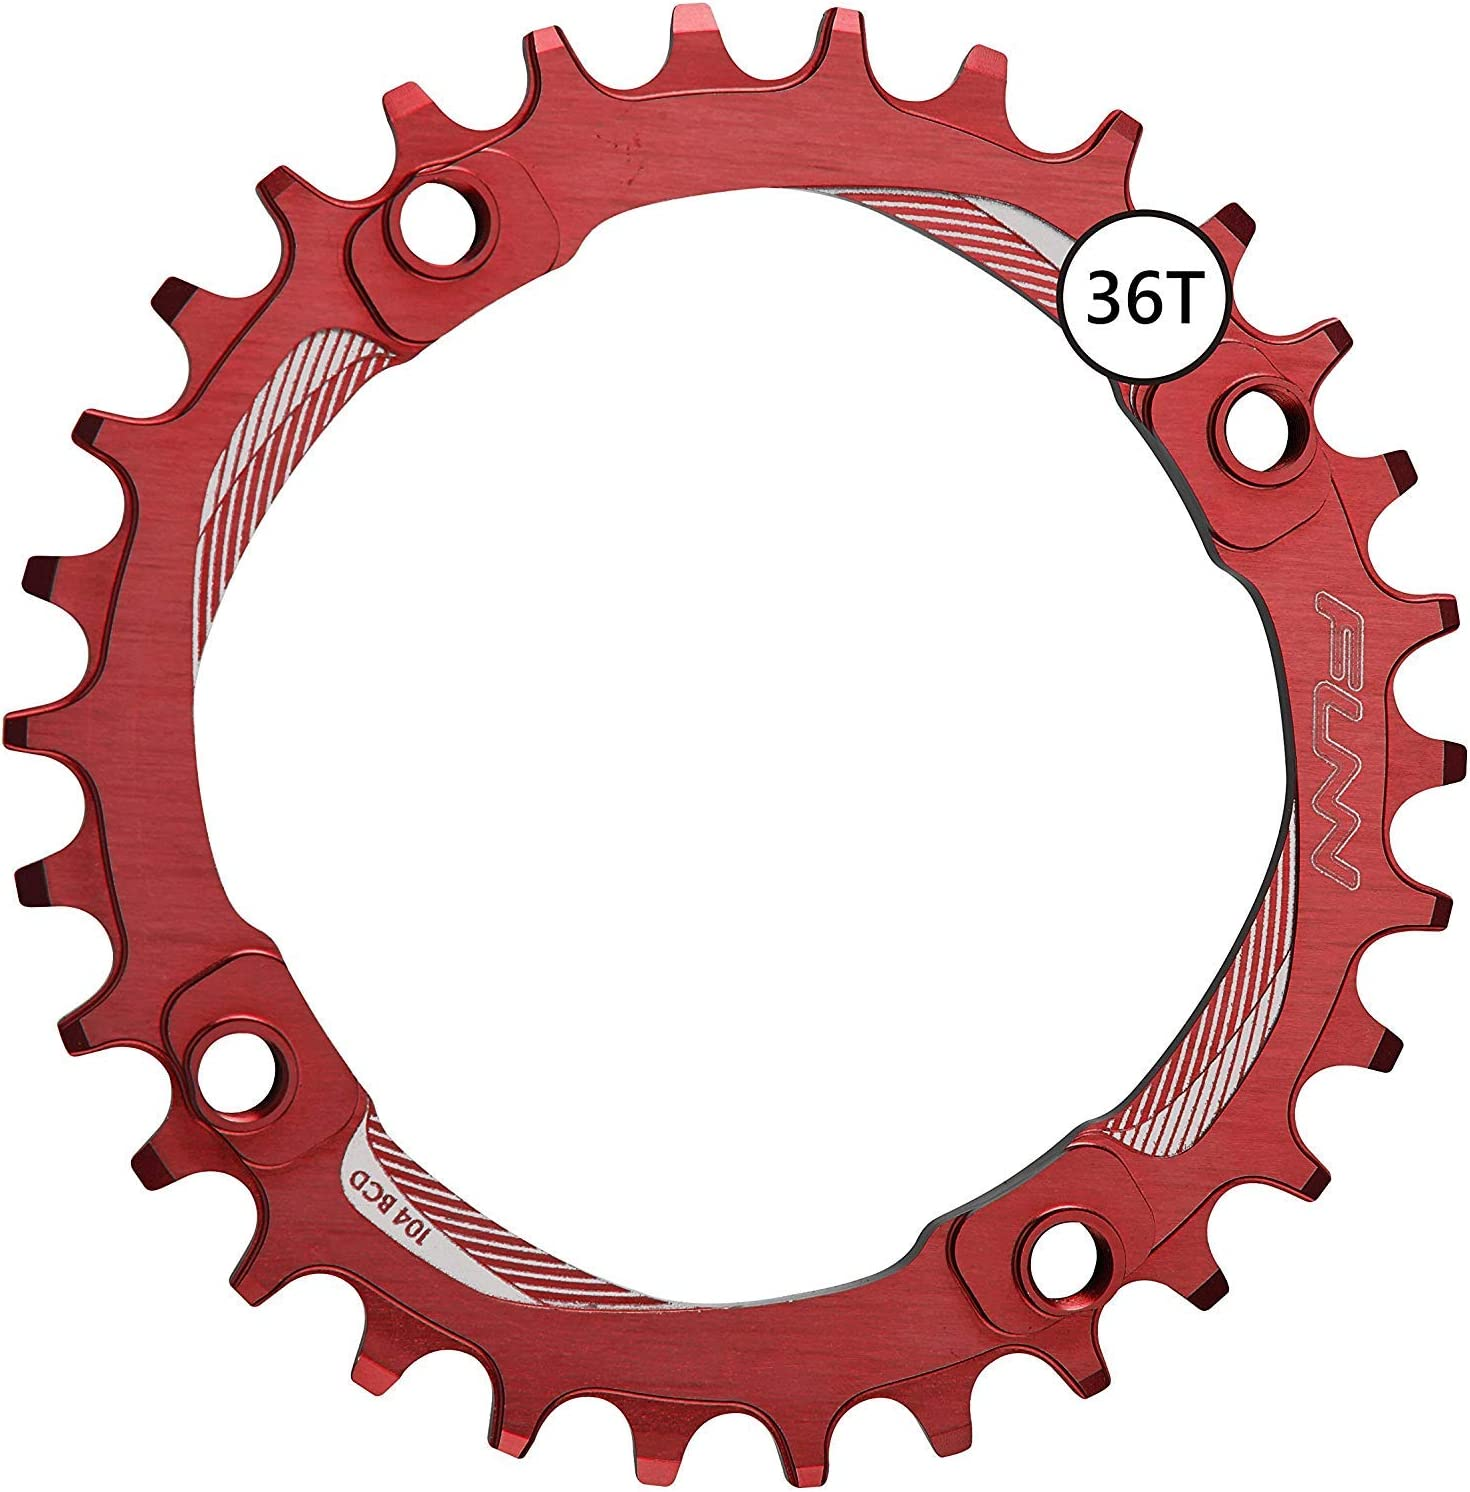 Funn Solo Narrow Wide Chain Ring BCD 104mm